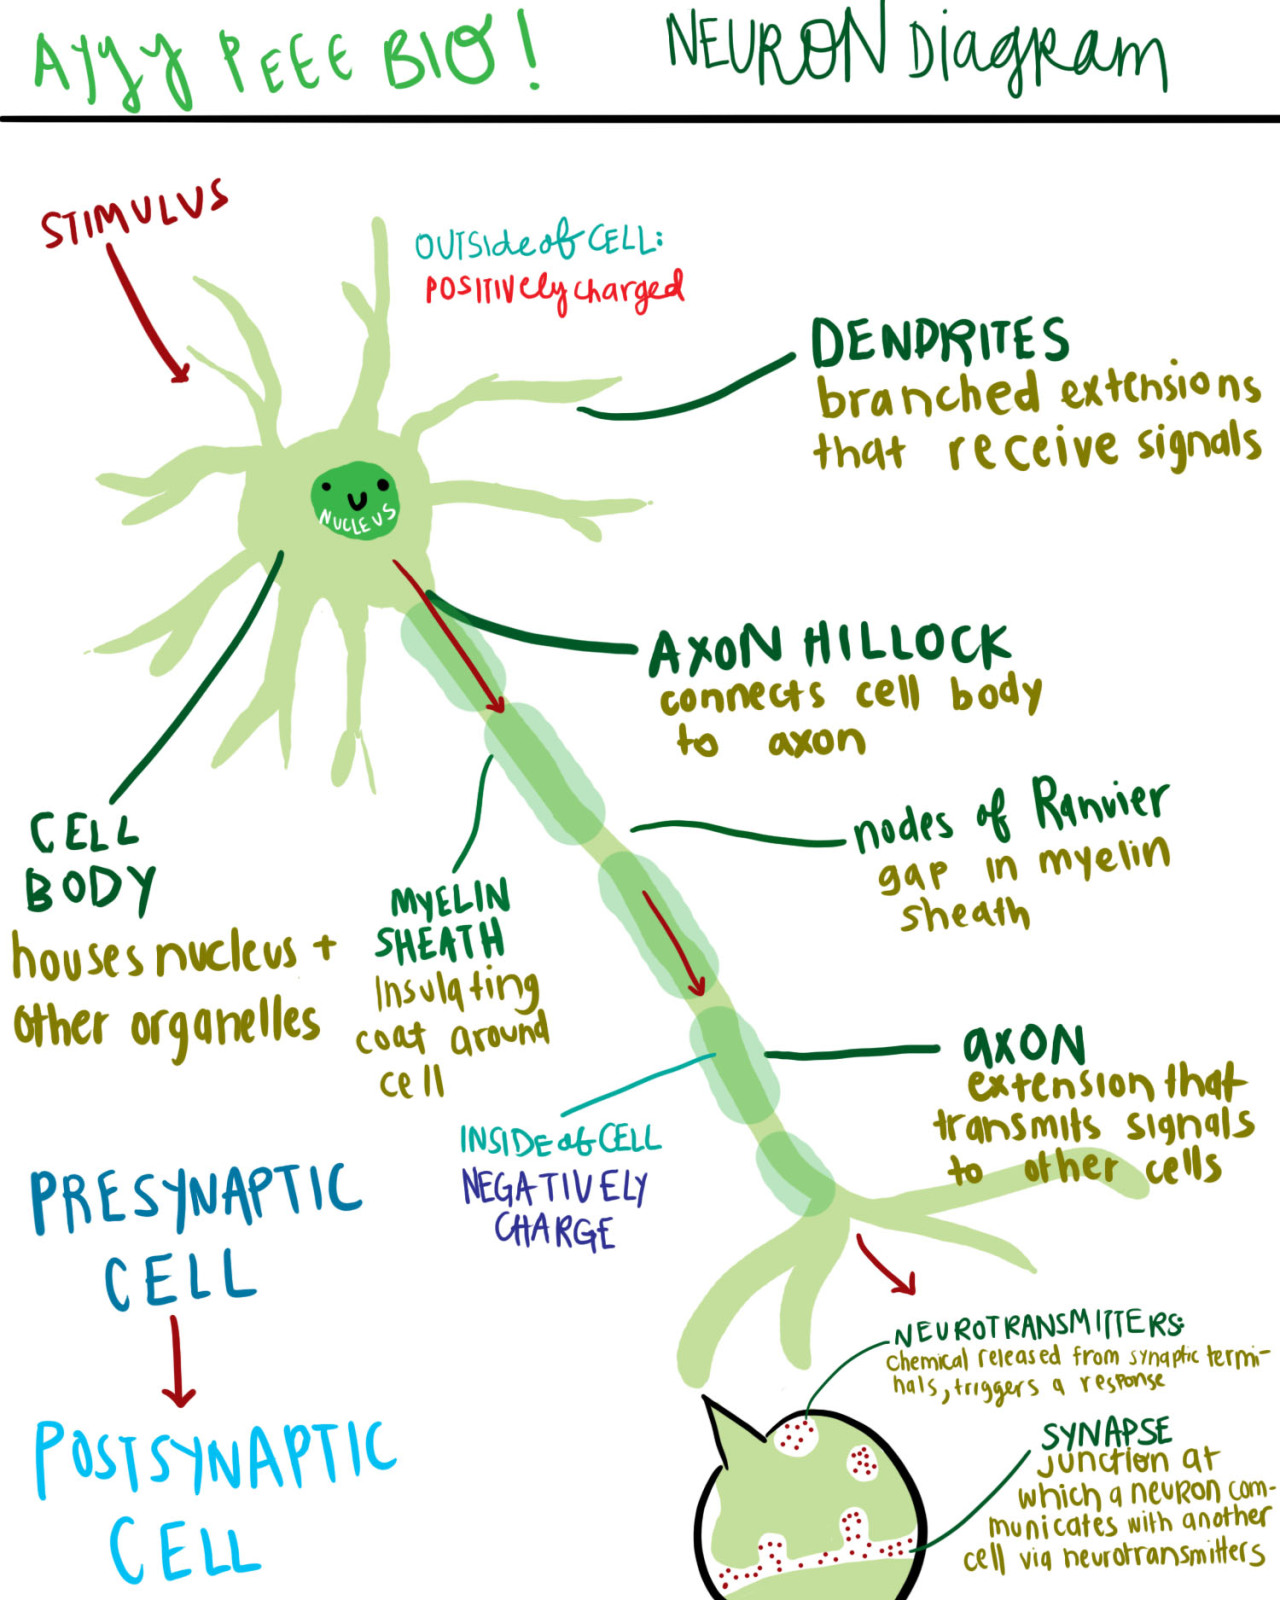 A Diagram Of A Neuron And Its Functions